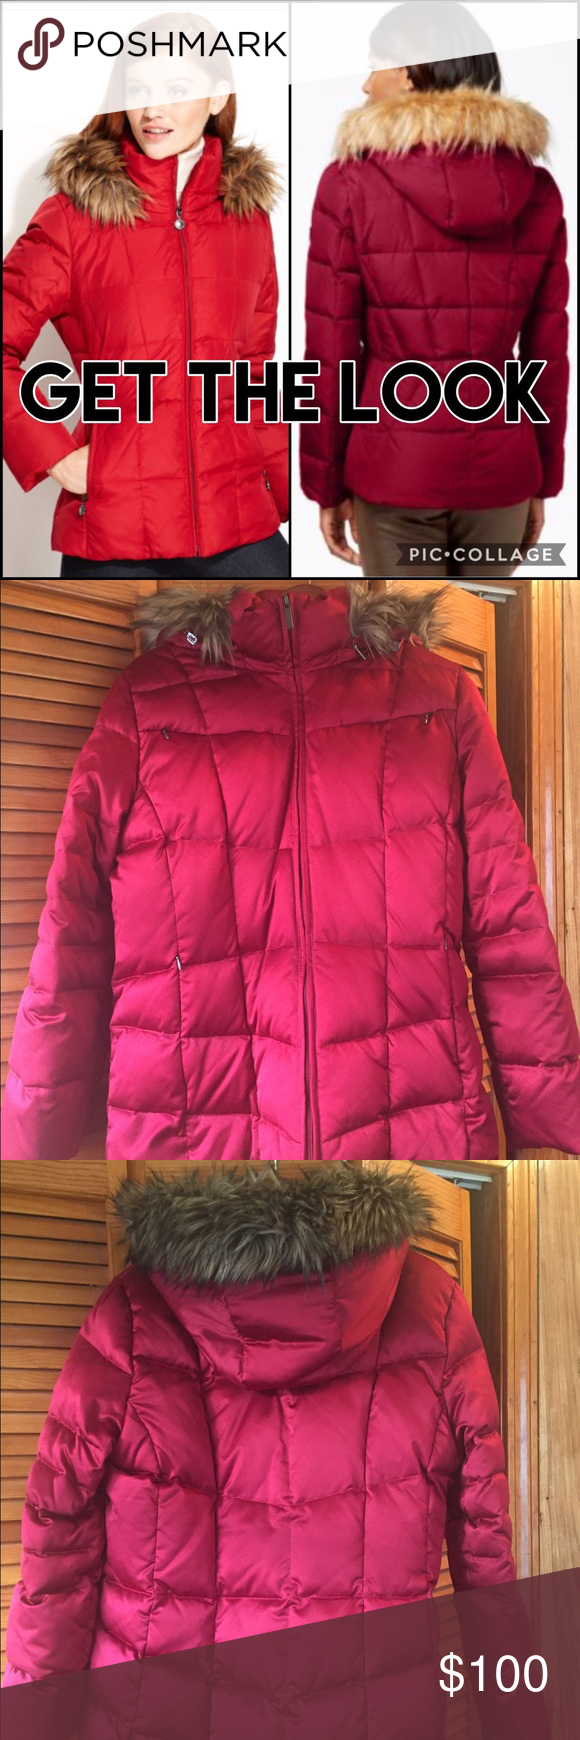 Calvin Klein Faux Fur Lined Quilted Puffer Coat Red Calvin Klein down coat. Size L. Has only been worn a handful of times, it is in excellent condition. The coat is lined with a very soft, dark chocolate brown faux fur lining. The filling is 80% down, 20% feathers. It comes with a detachable hood. The hood also has a faux fur trimming on it. It's has 2 pockets on the inside (see photo #4). The coat hits at around the hips. This is a perfect coat for those cold winter days. ❄️❄️ Calvin Klein…